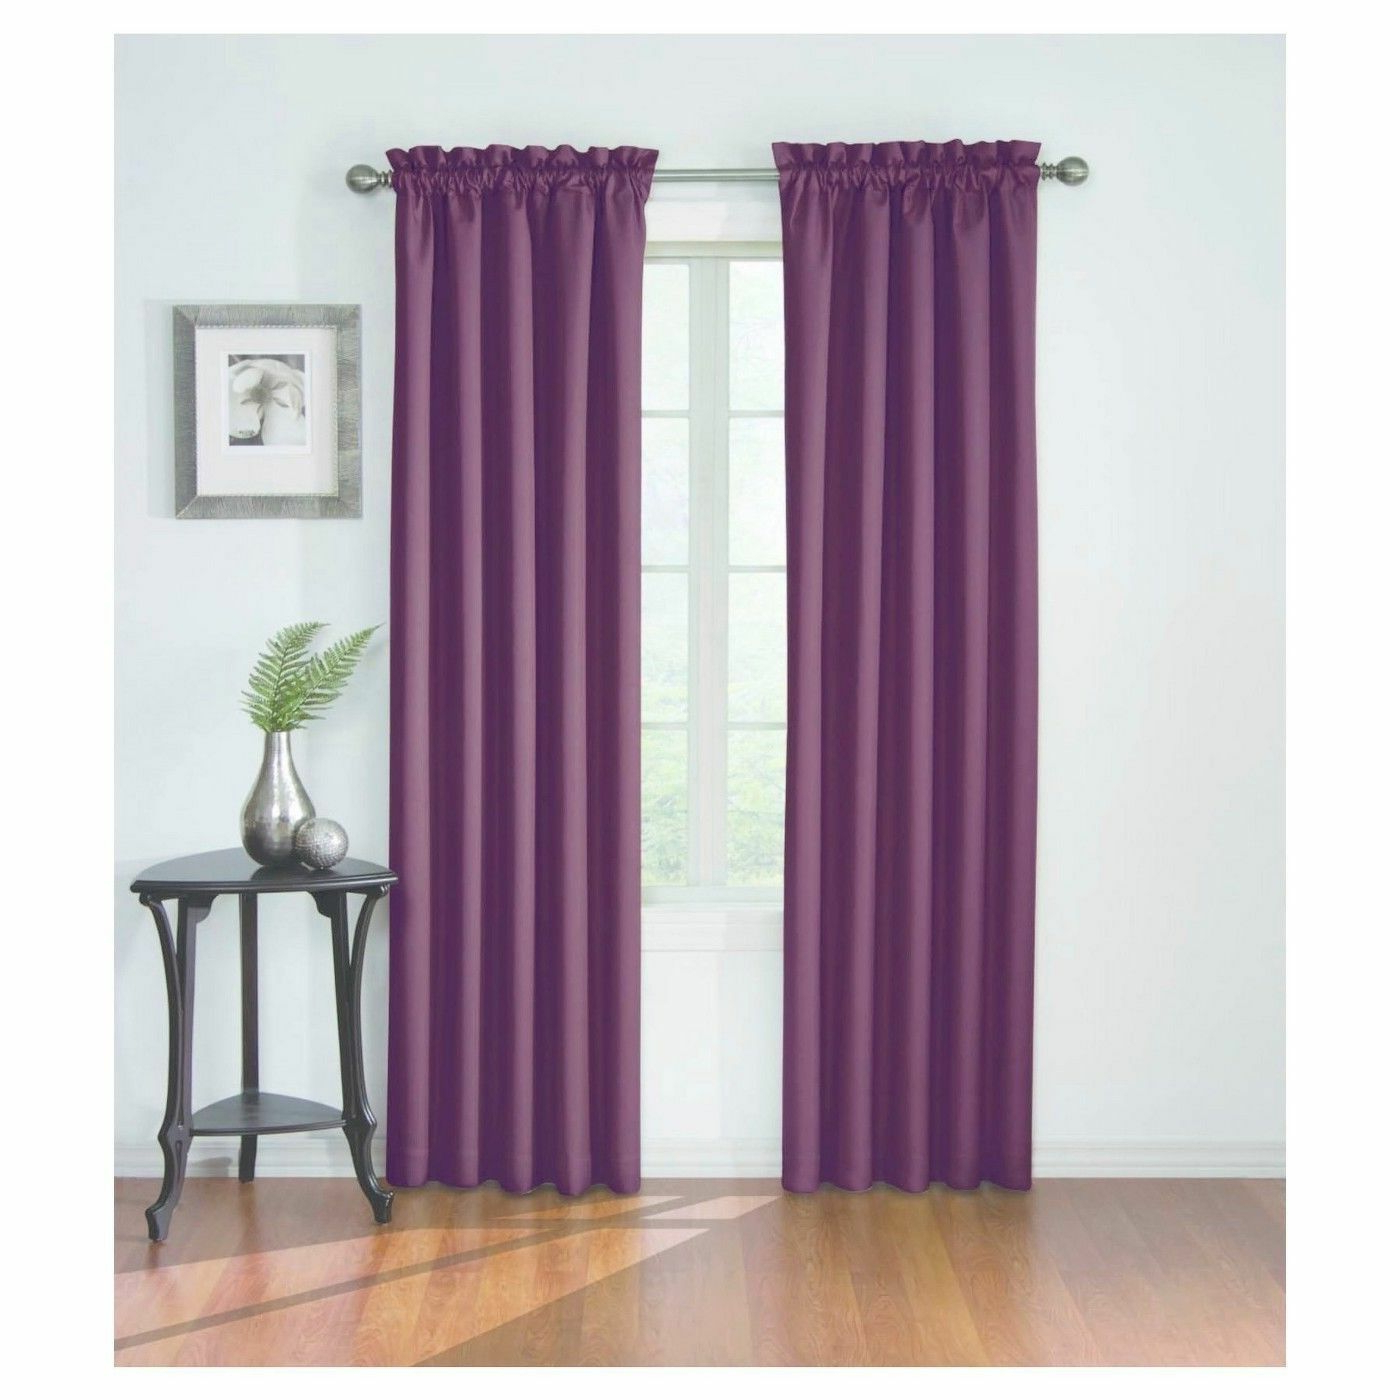 Most Current Eclipse Corinne Thermaback Blackout Window Panel – 42 X 84 Pertaining To Eclipse Corinne Thermaback Curtain Panels (View 11 of 20)